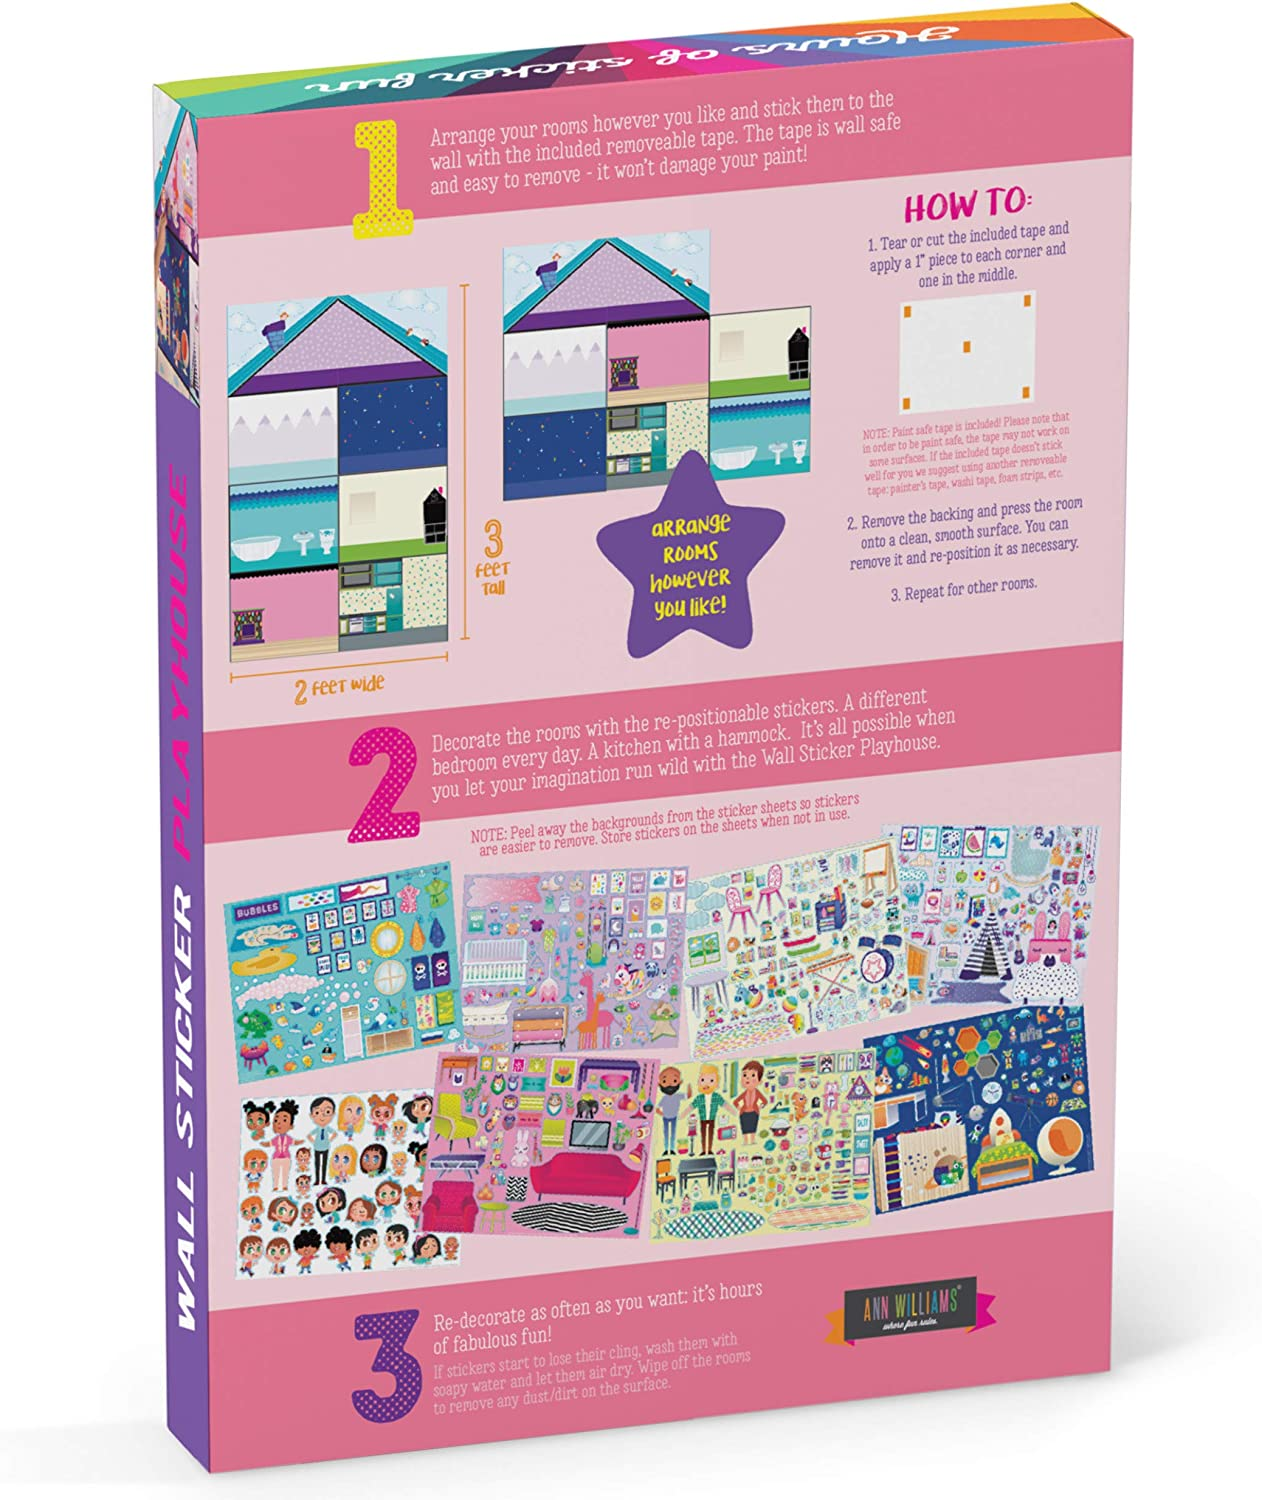 Wall Sticker Playhouse Craft-tastic Jr 3-Foot Tall Dreamhouse with Over 550 Reusable /& Repositionable Stickers